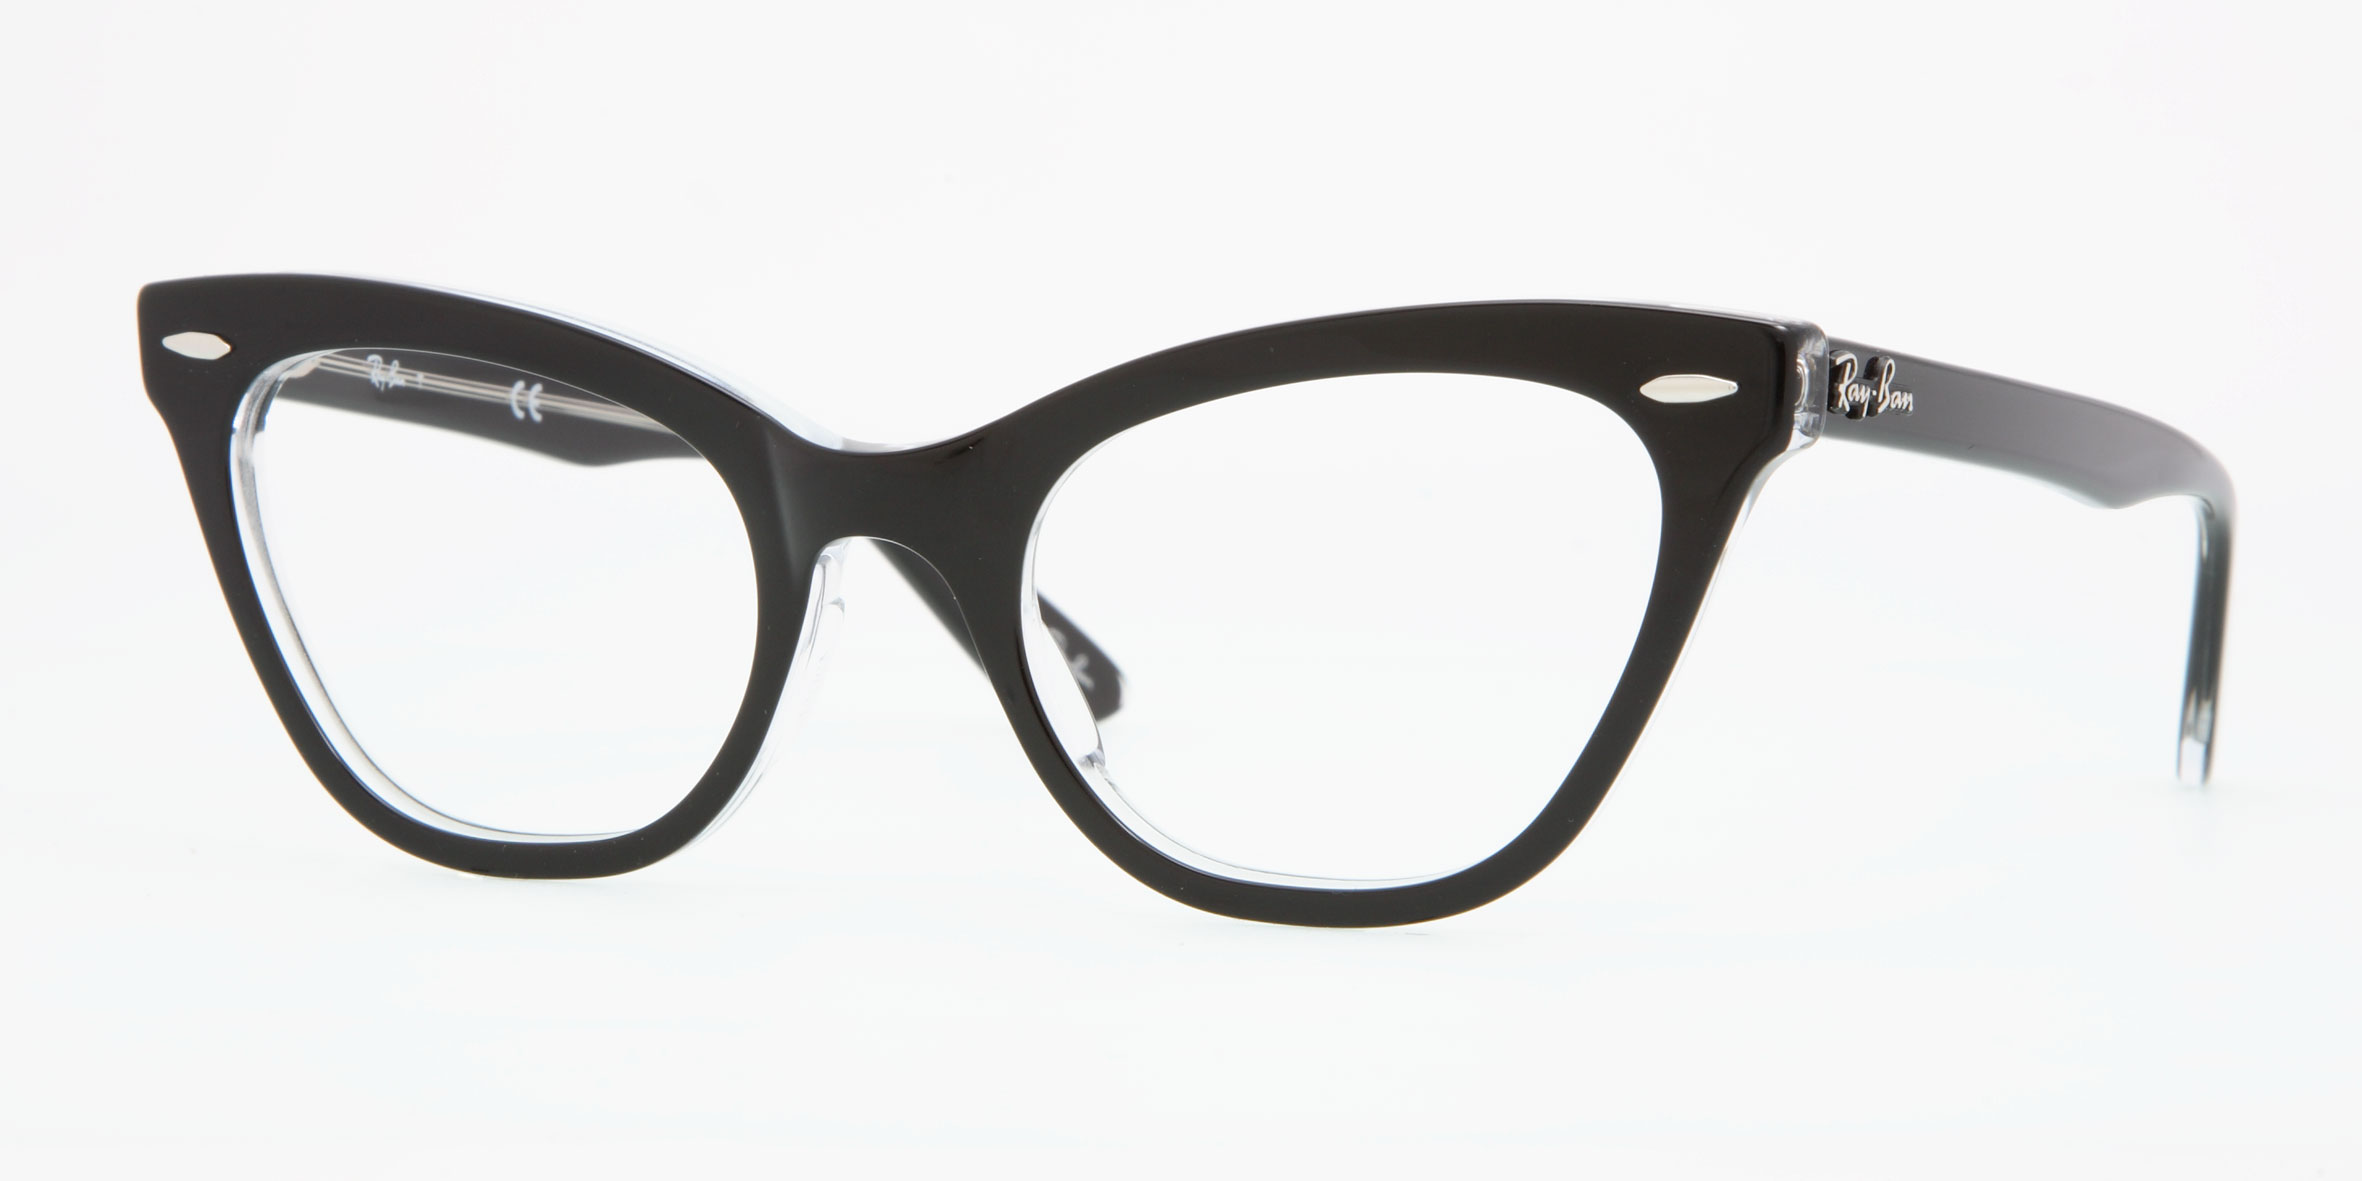 Cool Glasses Frames - Viewing Gallery